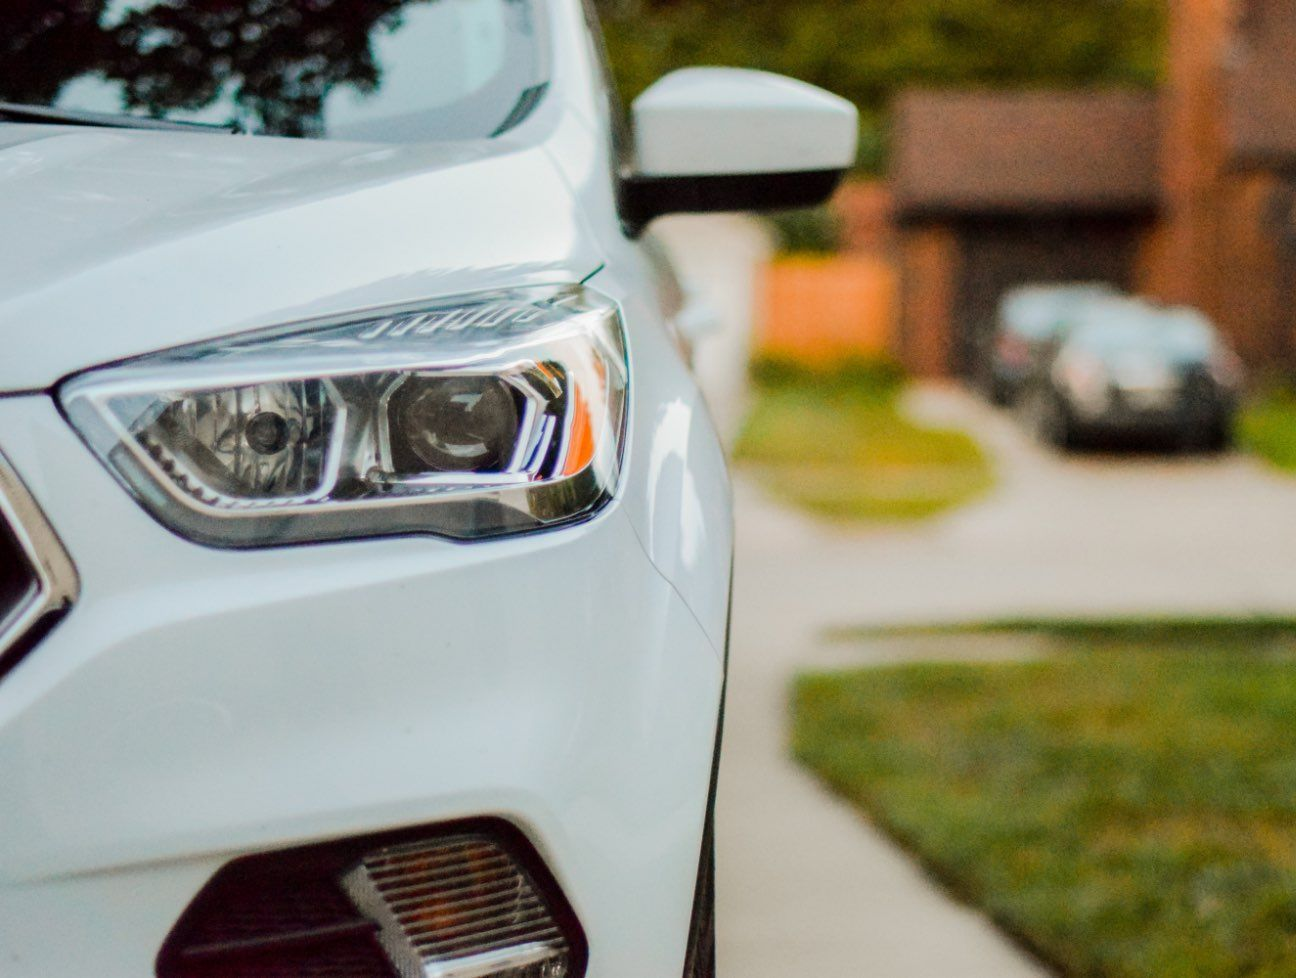 Close up of car front and headlight.